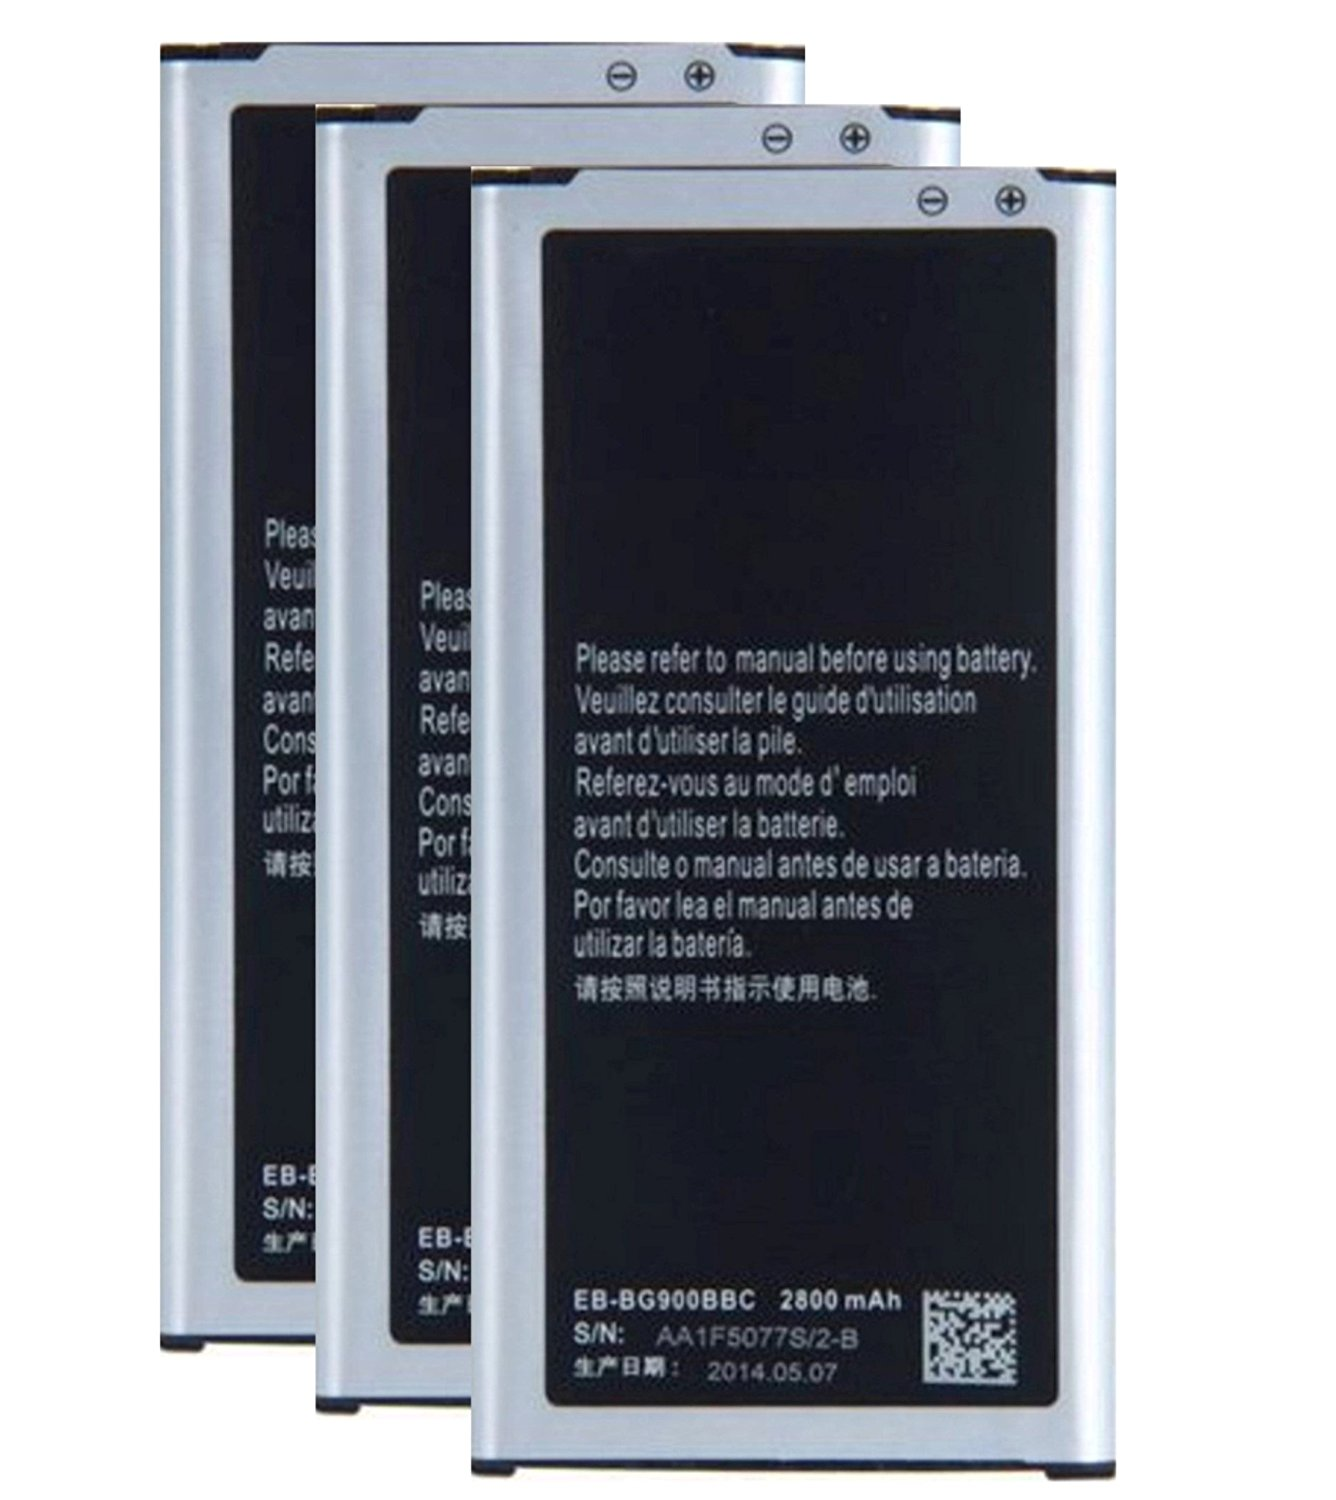 Cellstarr, New 3X 2800mAh Lithium-ion Rechargeable Replacement Batteries EB-BG900BBC for Samsung Galaxy S5 GT-i9600, SM-G900A, SM-G900V, SM-G900T, SM-G900P, SM-G900R4, SM-G900T1, S5 Active SM-G870